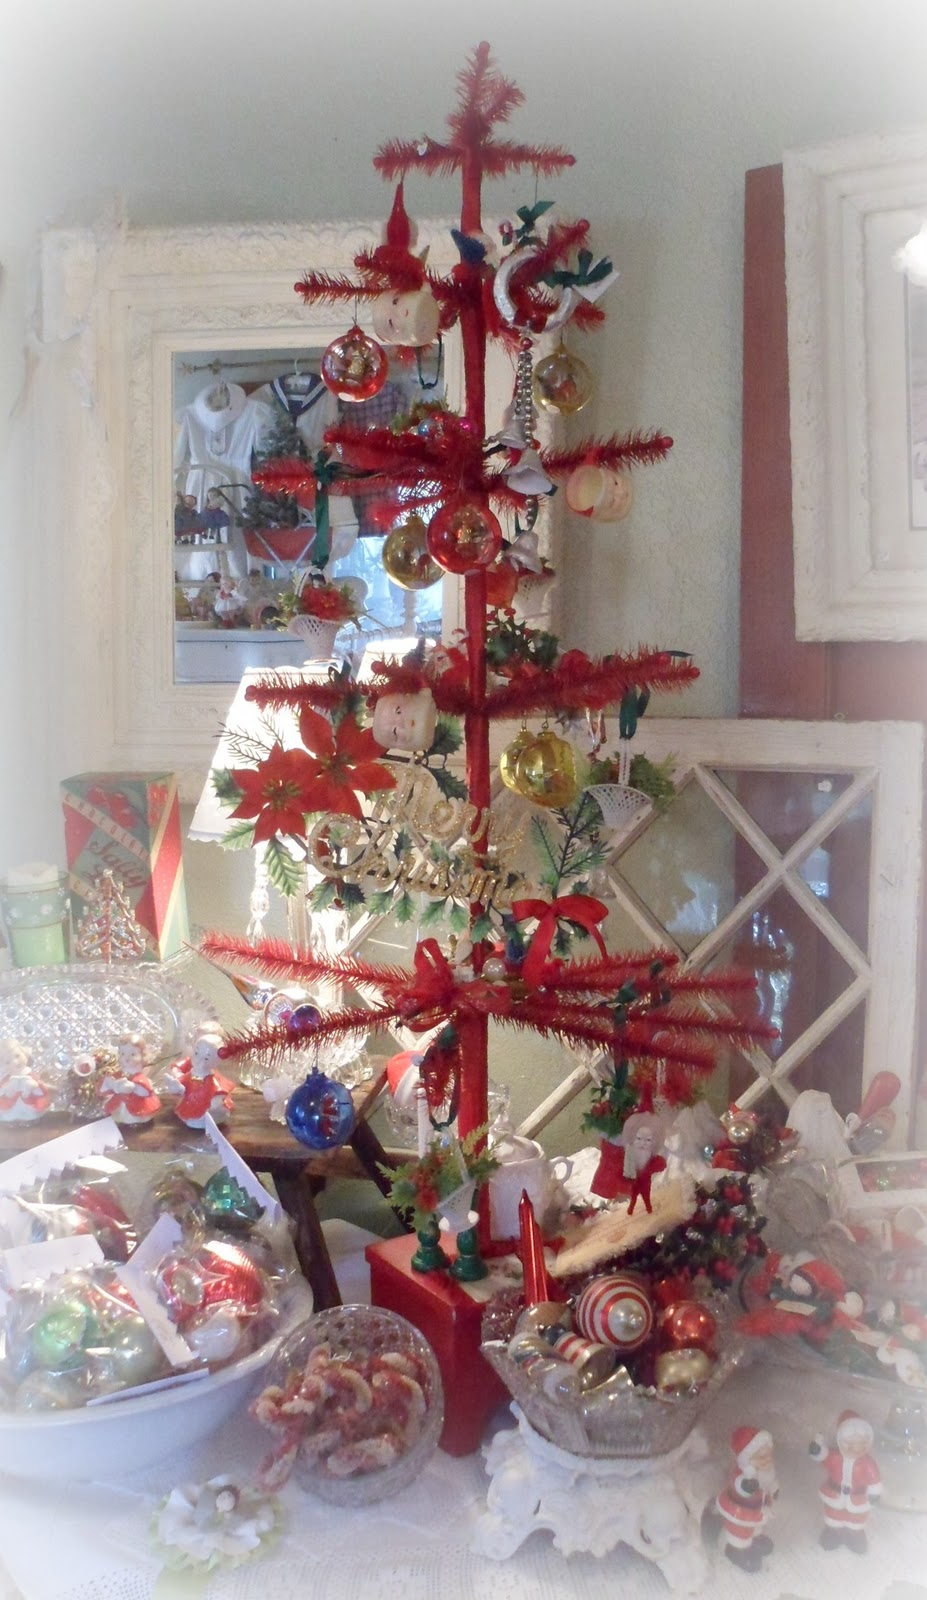 42 Stunning Whimsical Christmas Decorations Ideas  Decoration Love